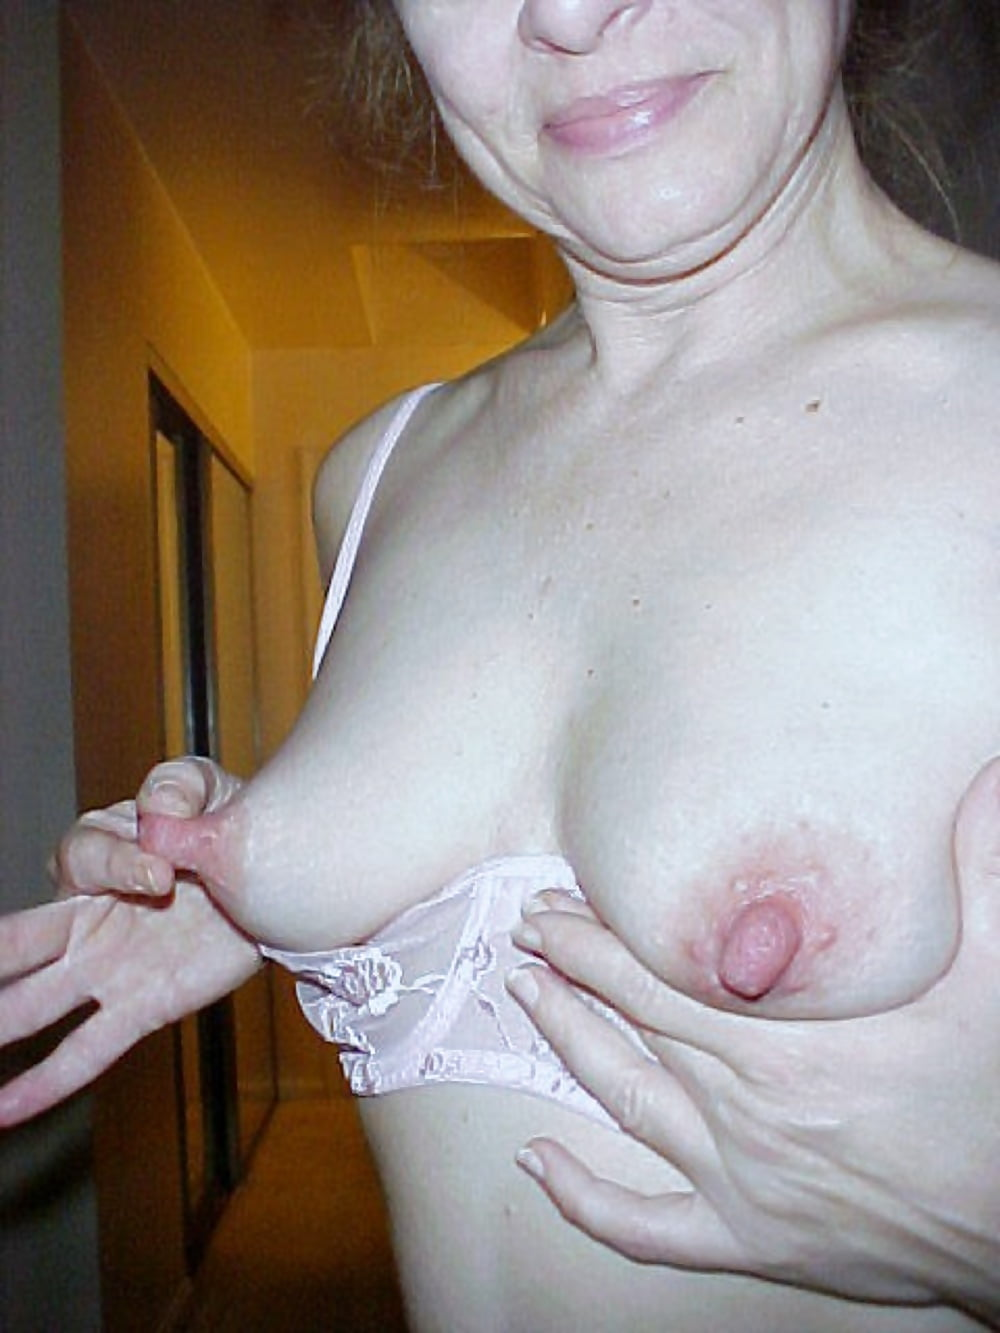 Long hard milf nipples cosplay porn